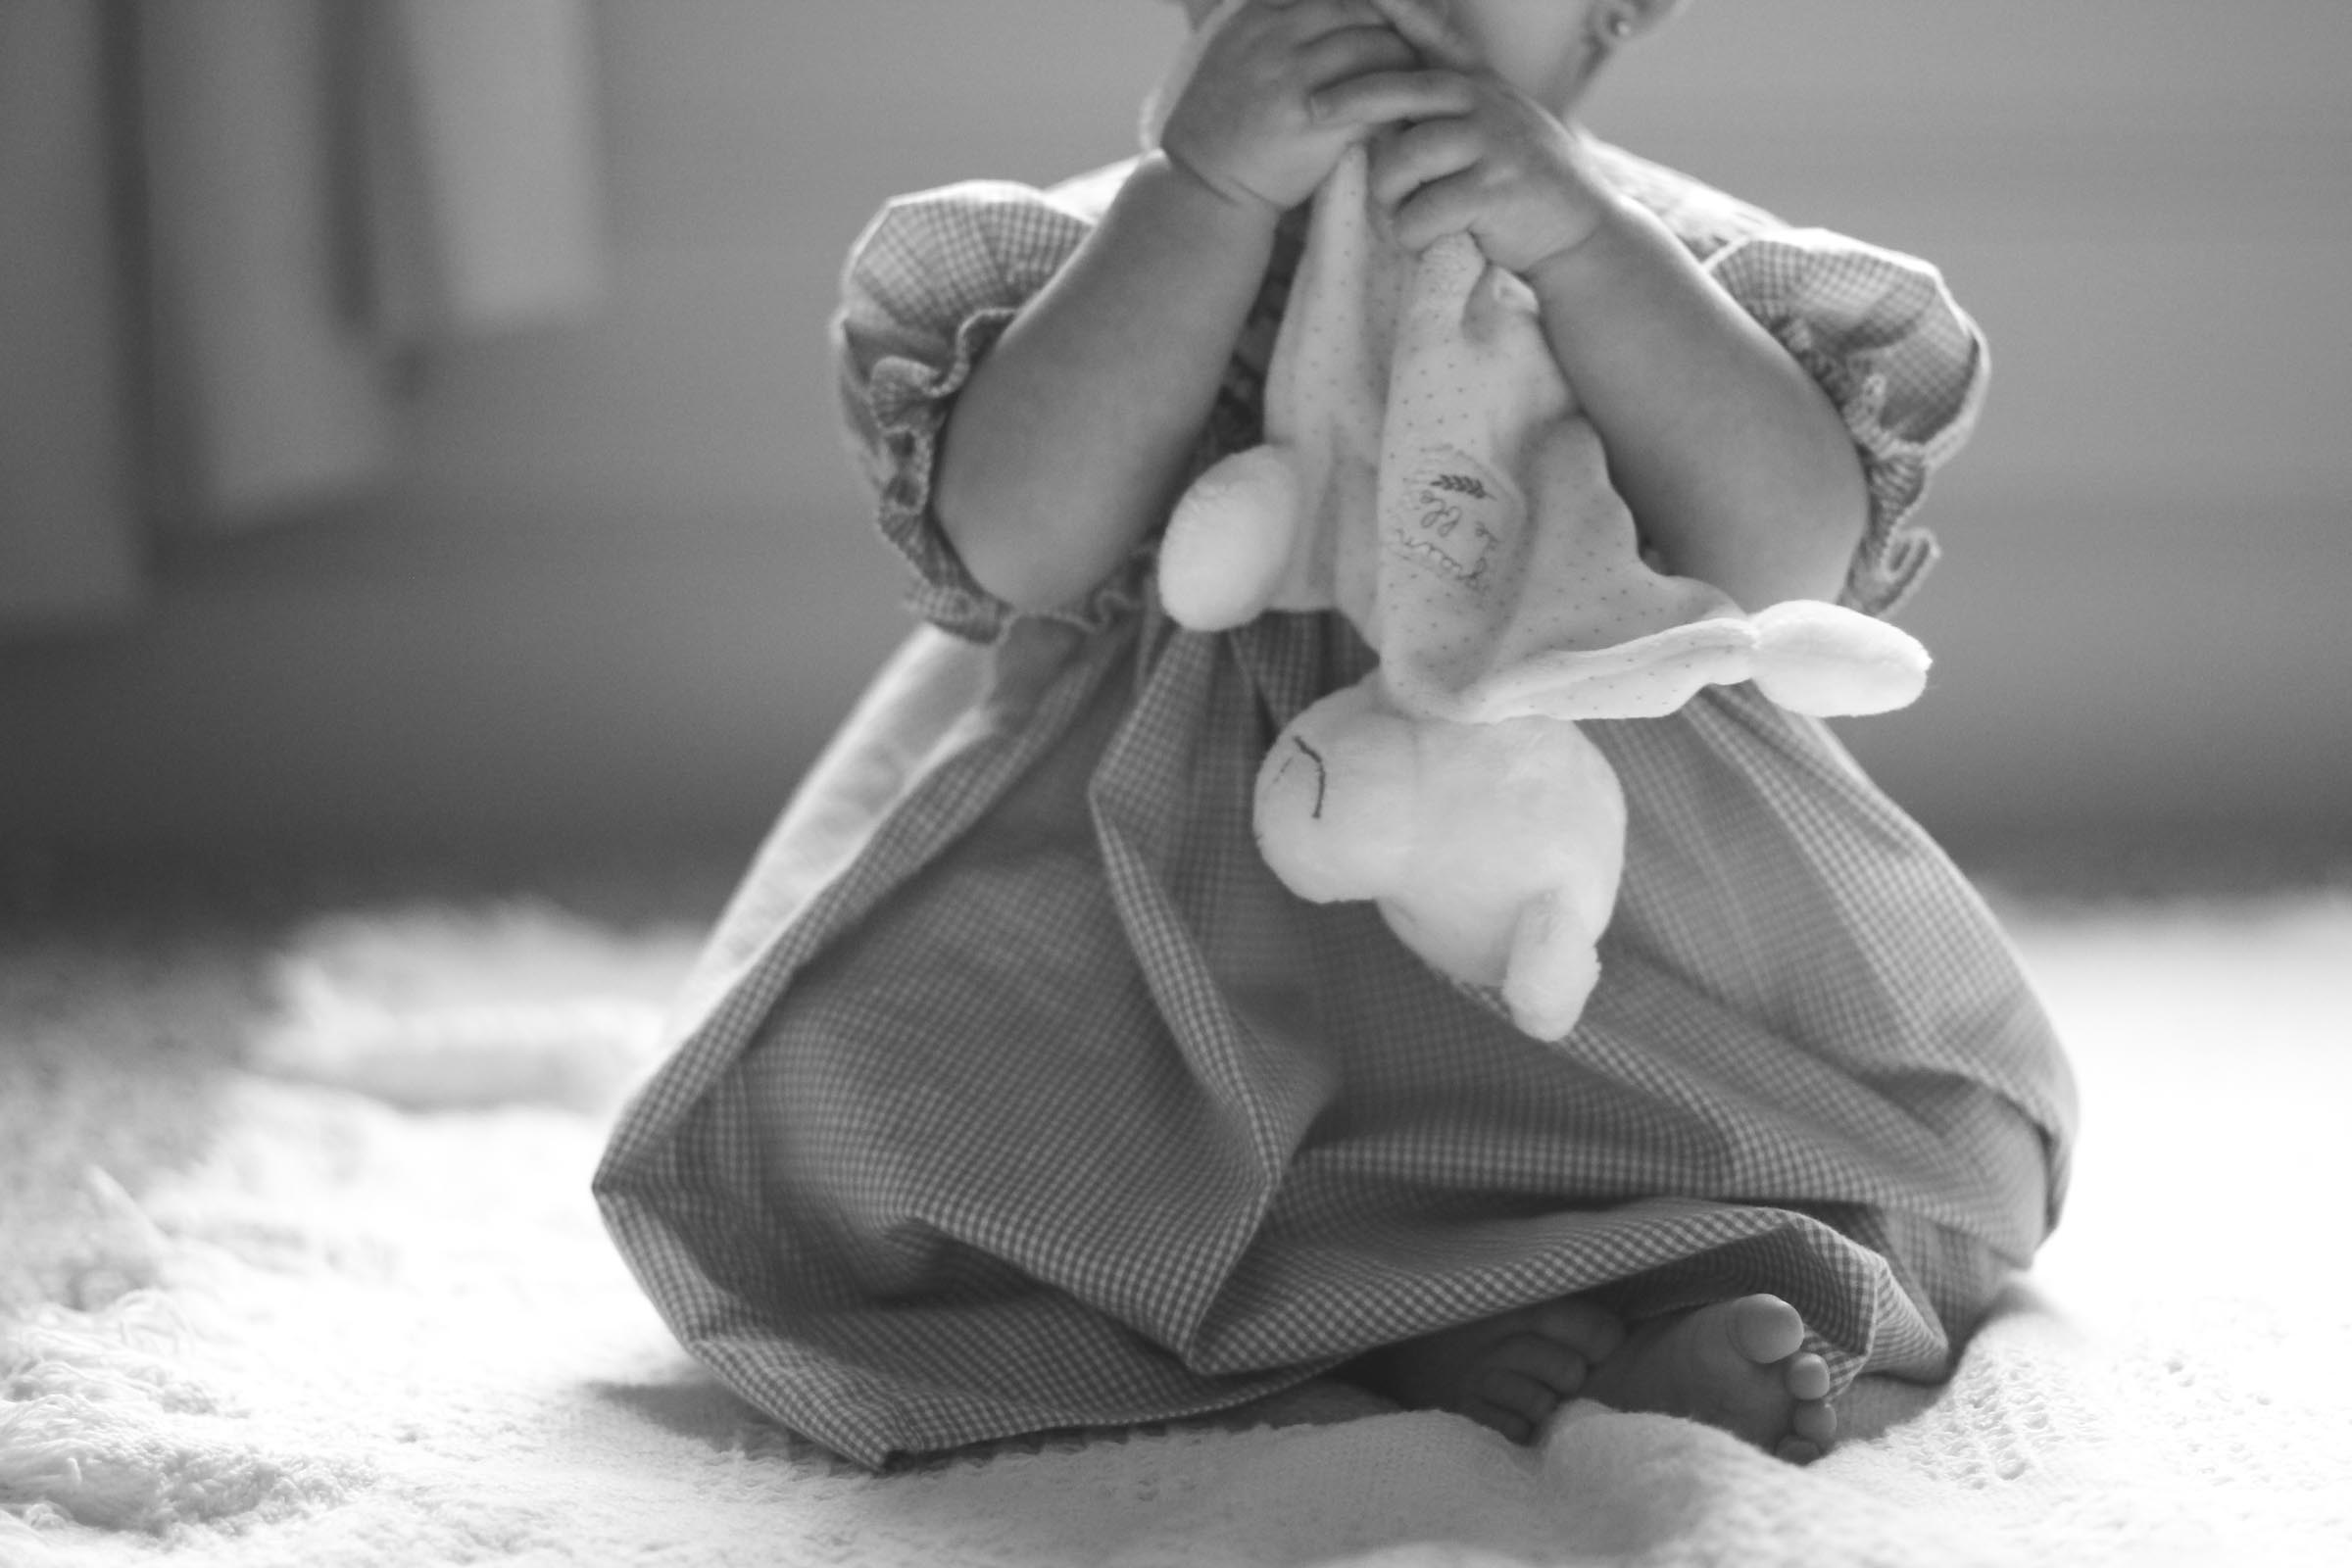 ashley-landry-photography-raymond-09-2016-15-of-41